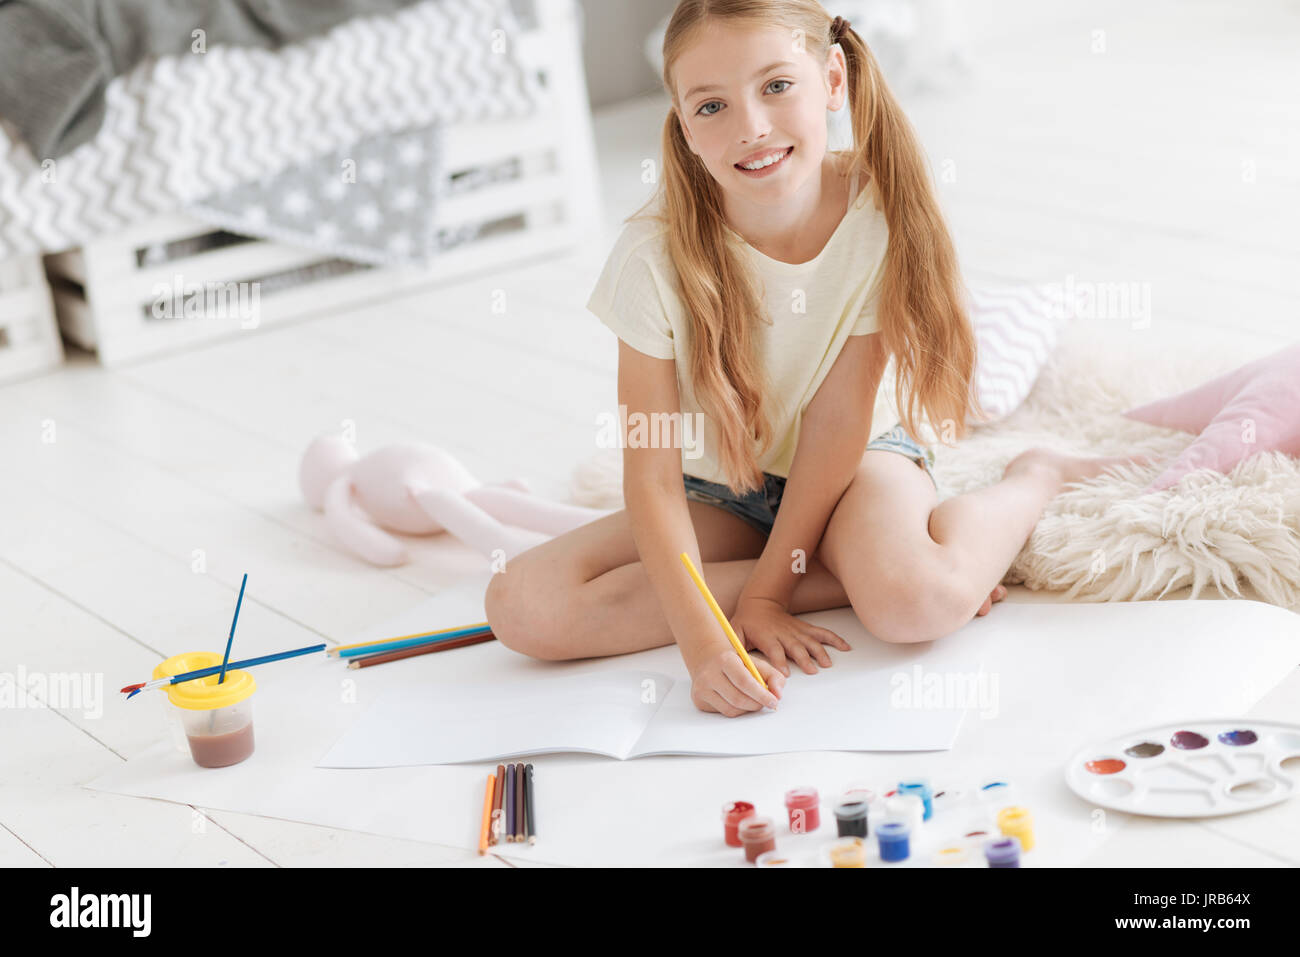 Belle fille à la caméra pendant le dessin en Photo Stock